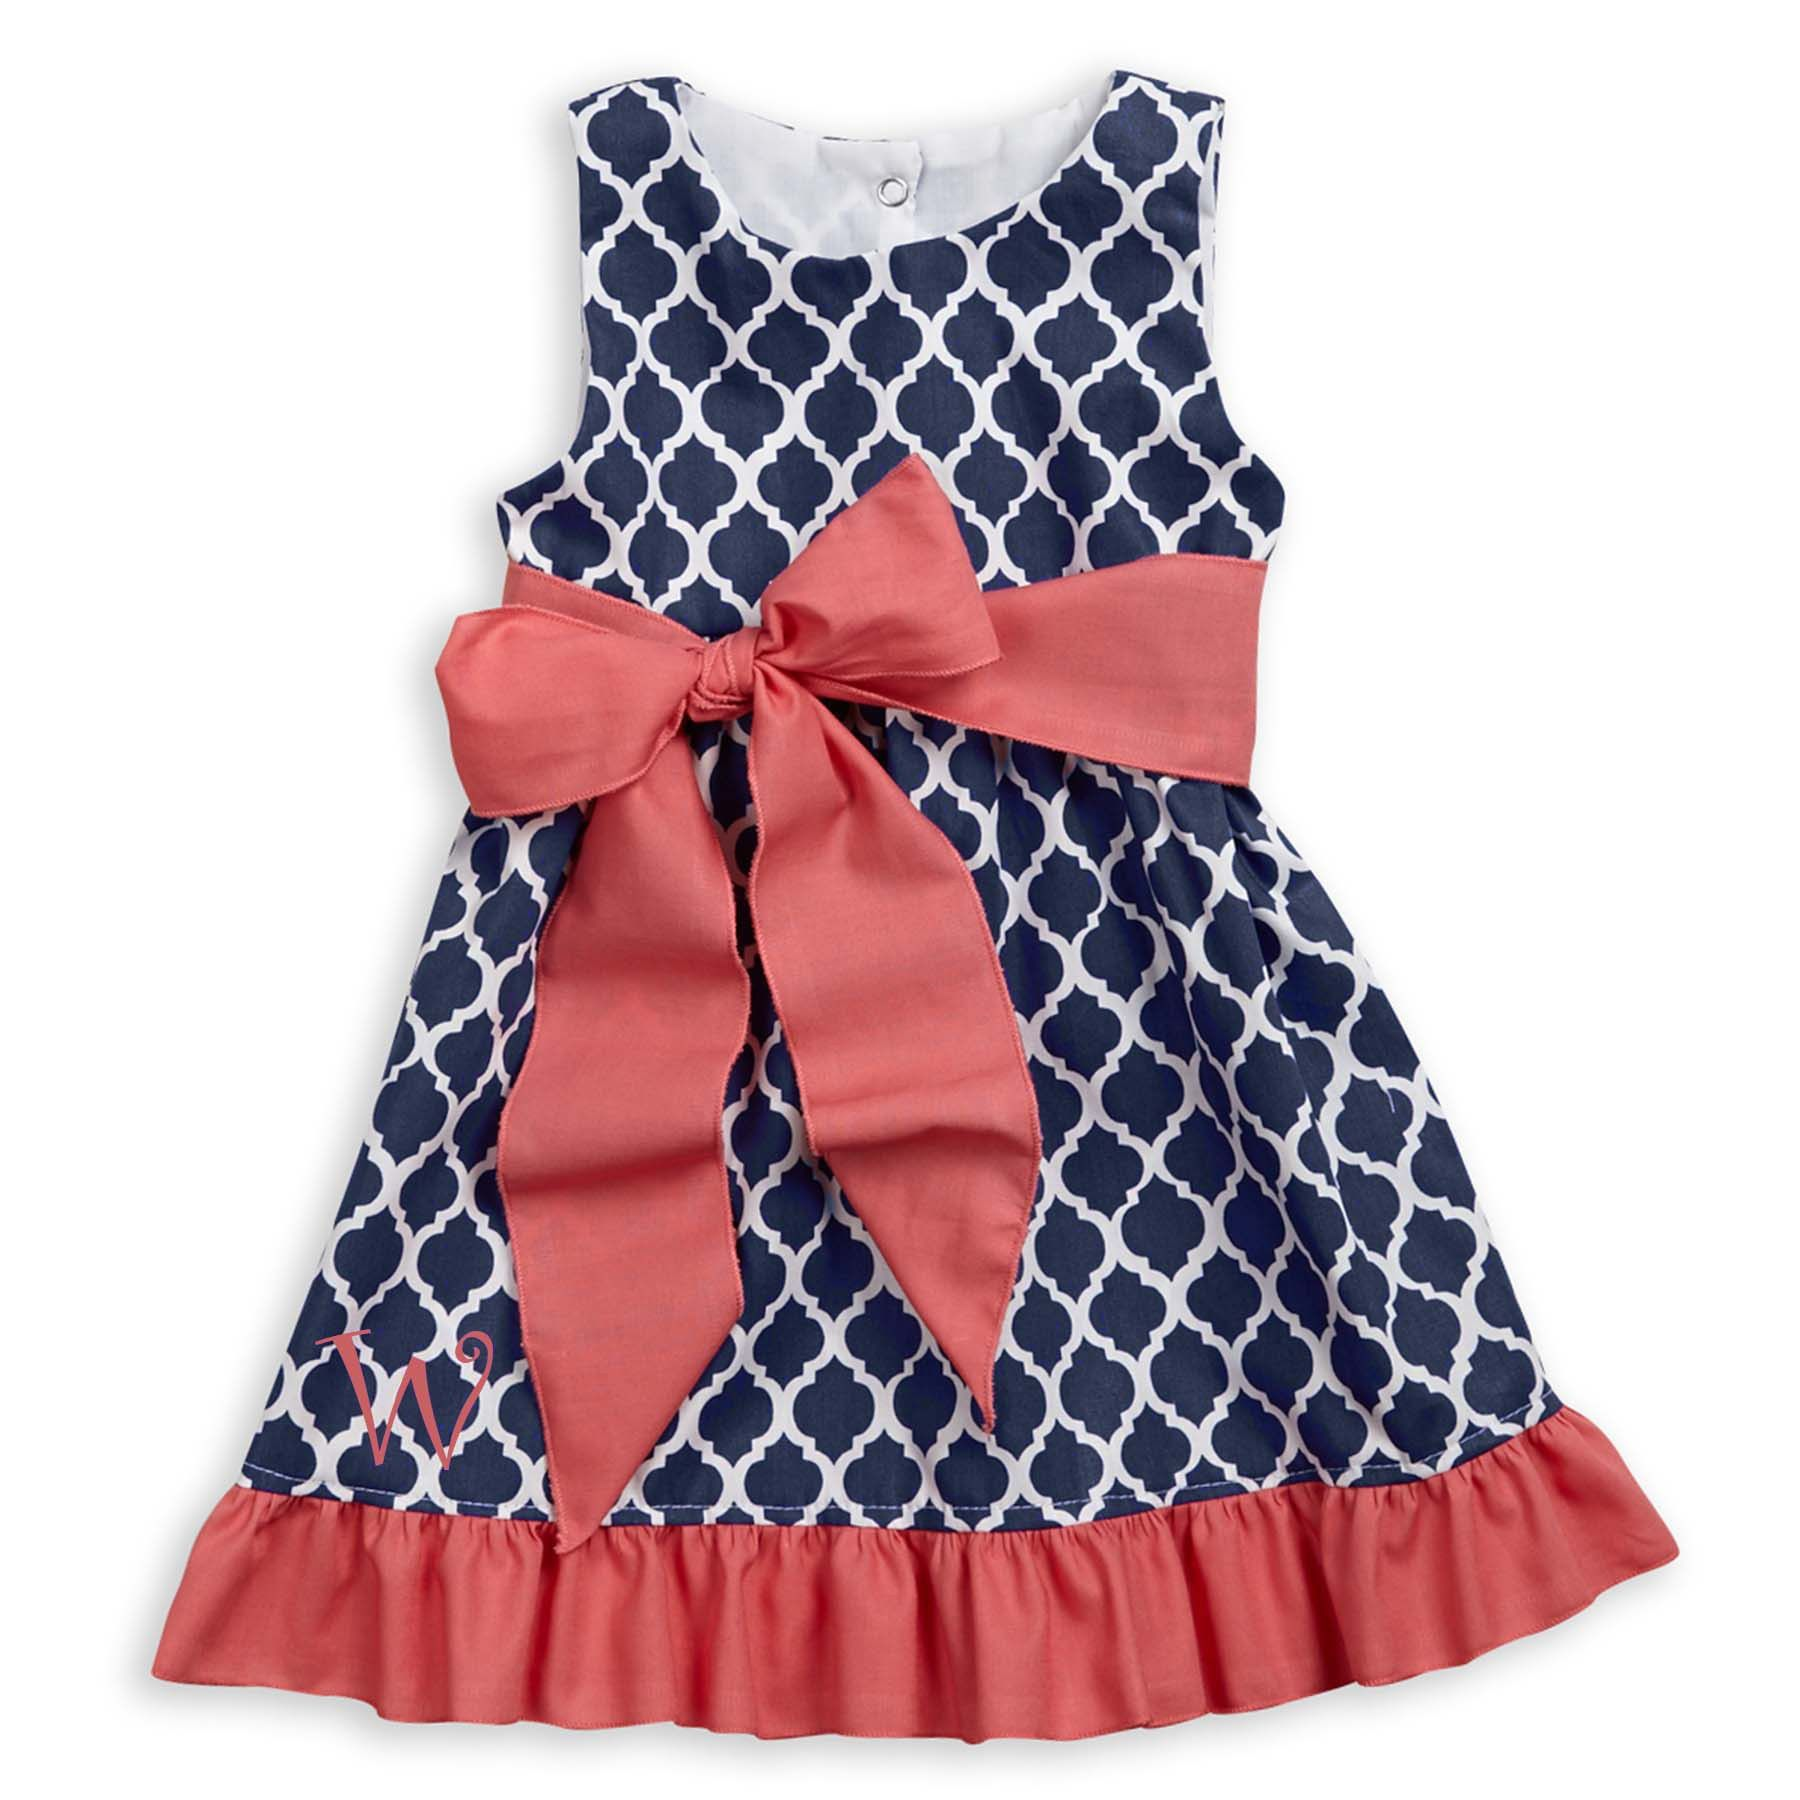 6da4e8caef4 Love this Girls Navy Lattice Coral Sash Ava Dress I discovered at  lollywollydoodle.